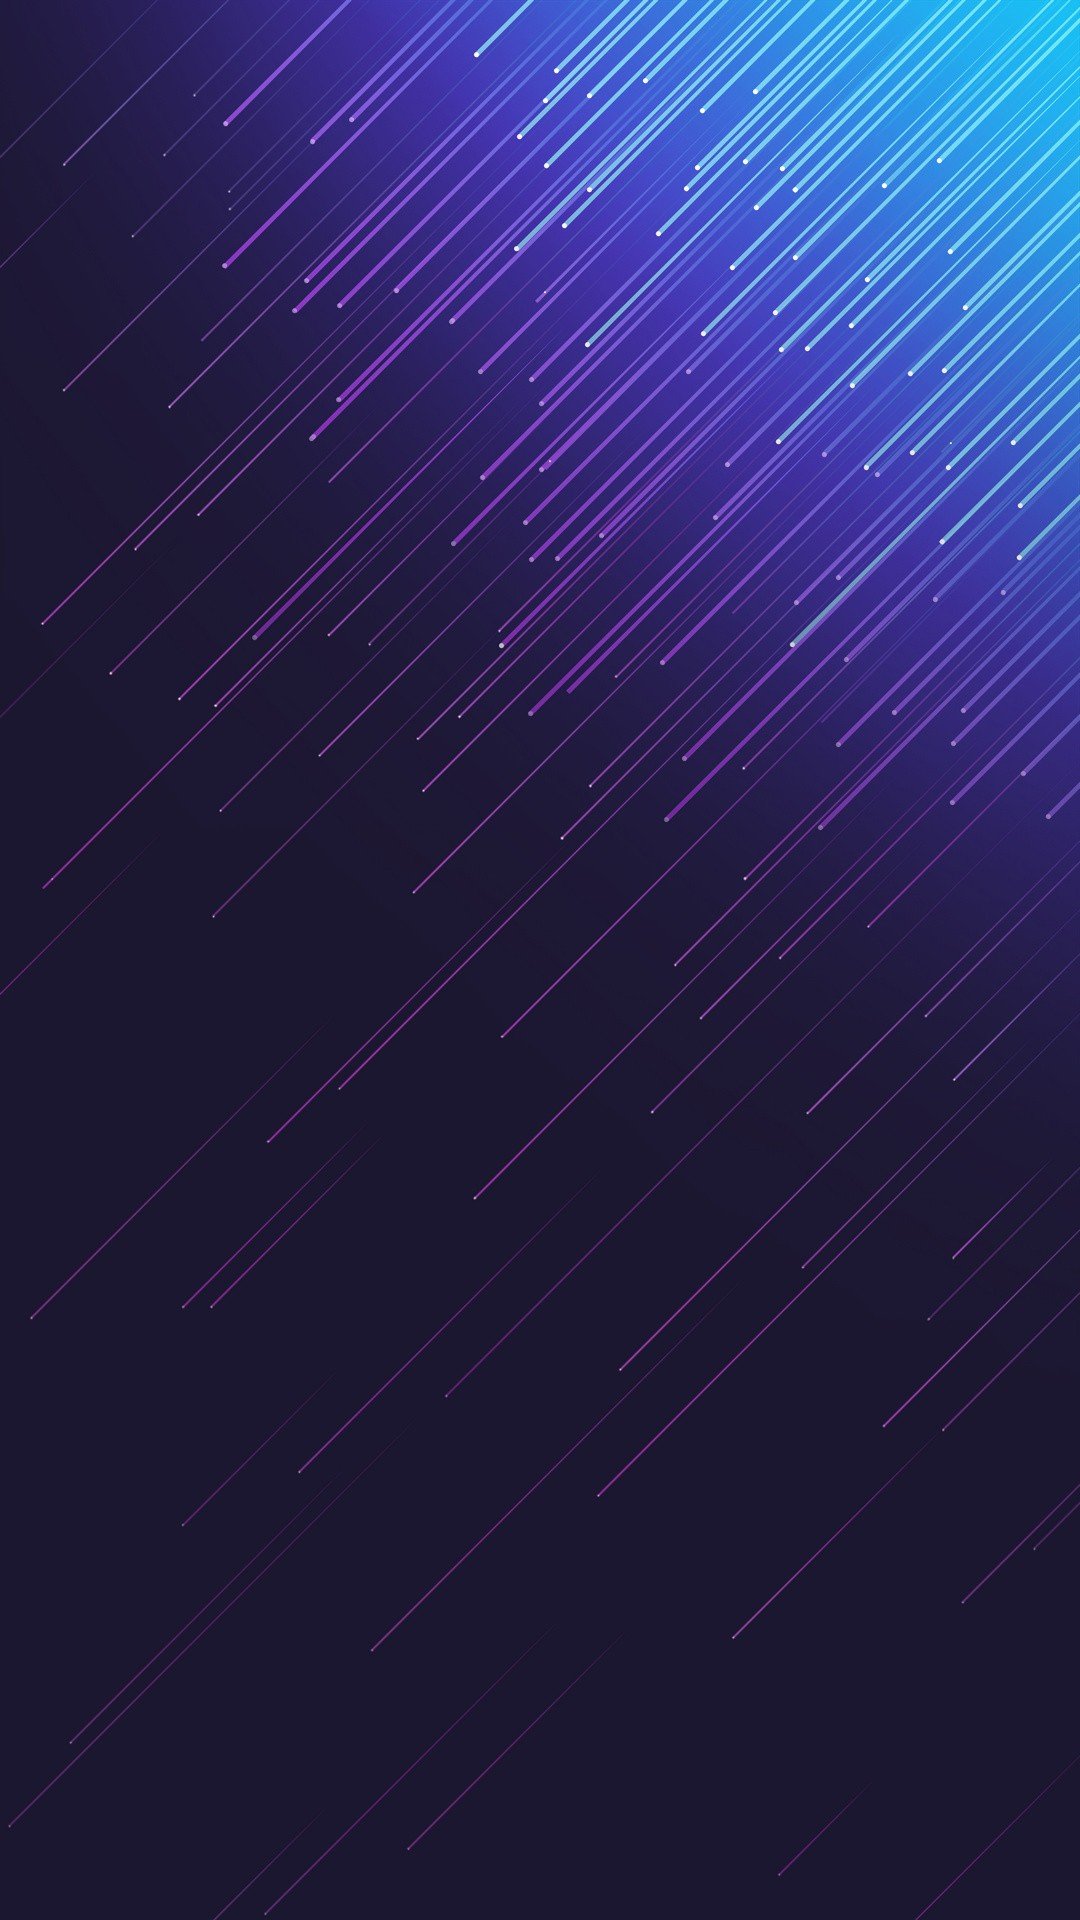 Star trail wallpaper 1080x1920 for Wallpaper stockists